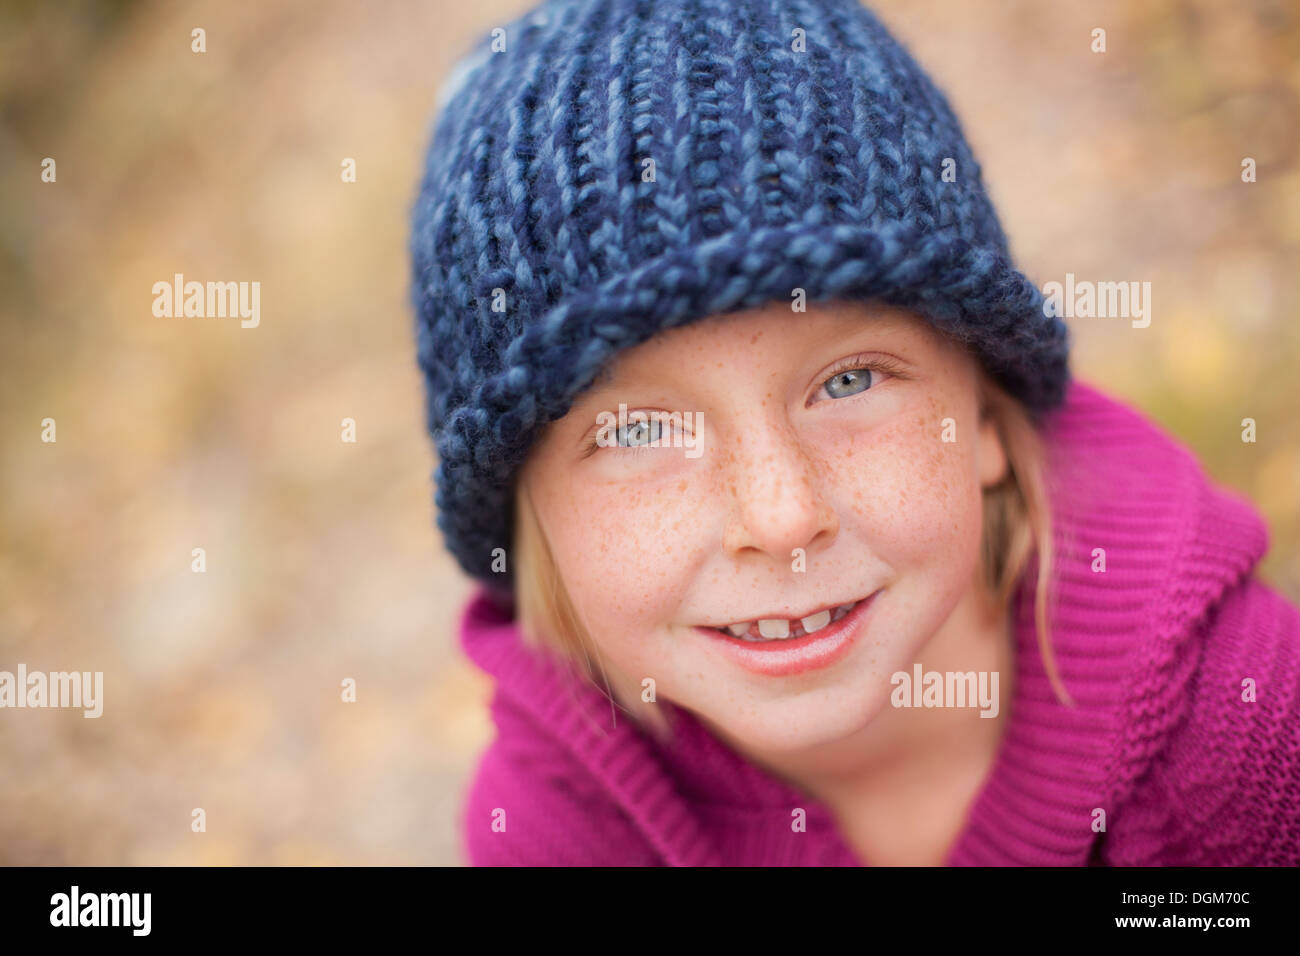 A girl in a knitted hat, and magenta jumper with a folded collar. - Stock Image